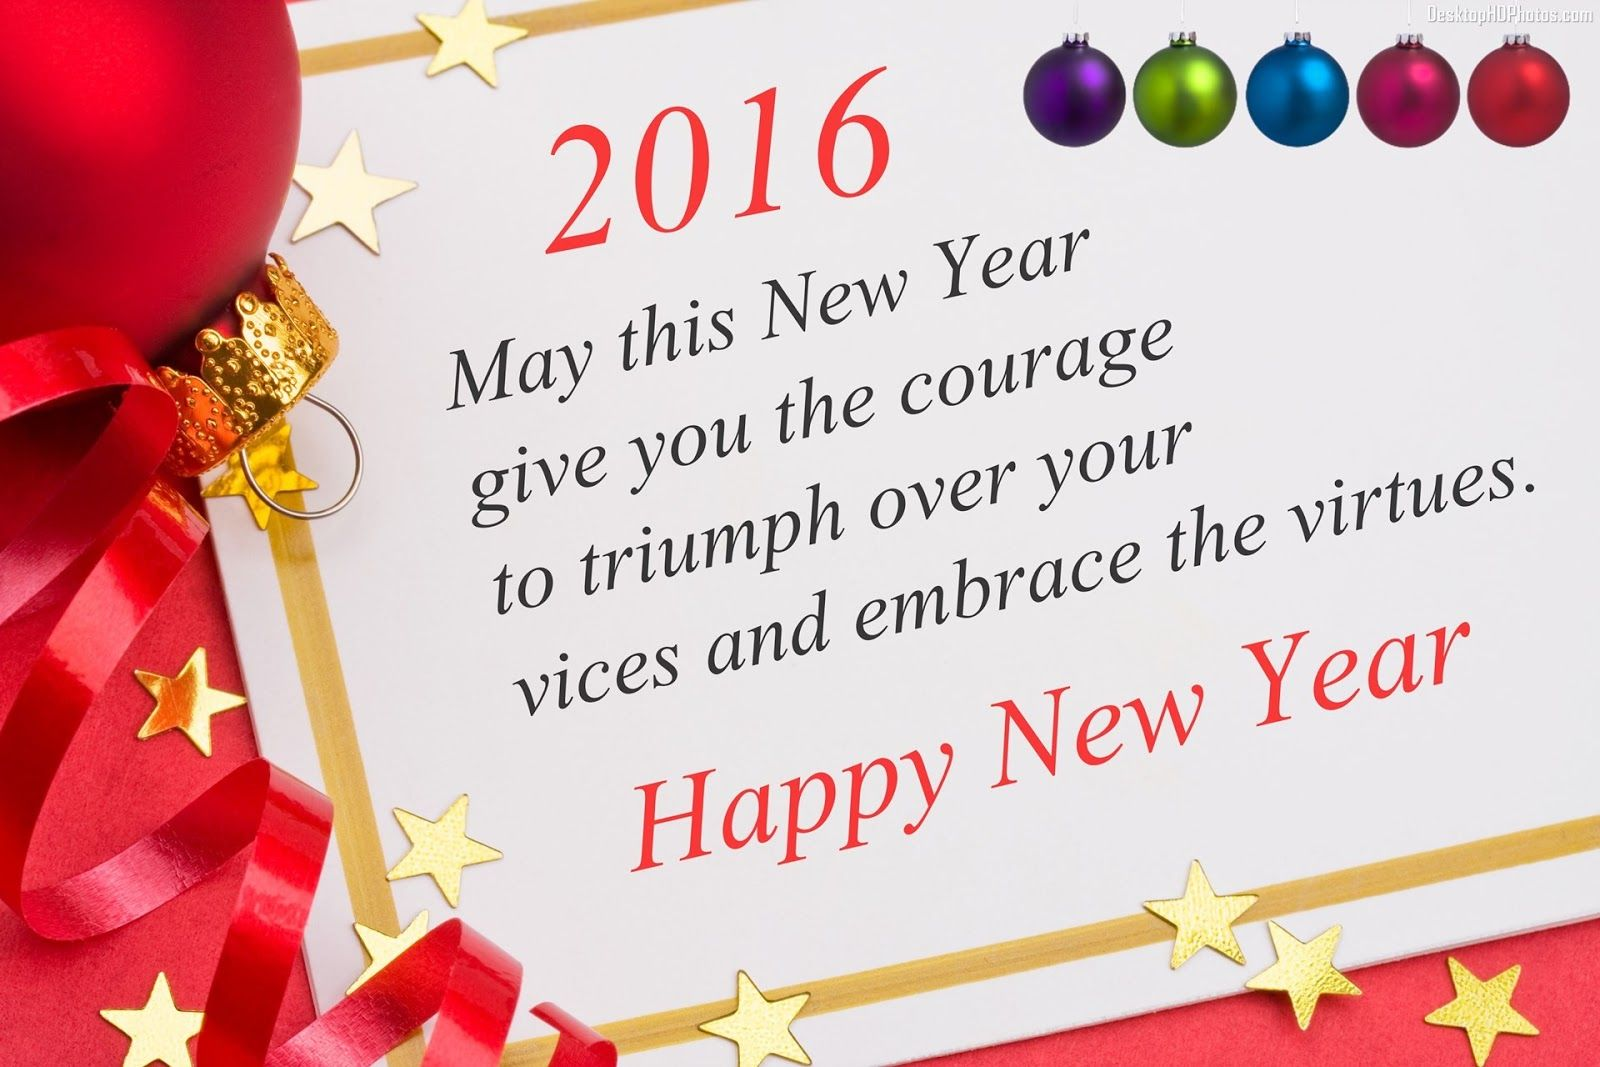 happy new year 2016 sms english sms shayariexpress.in | new year ...